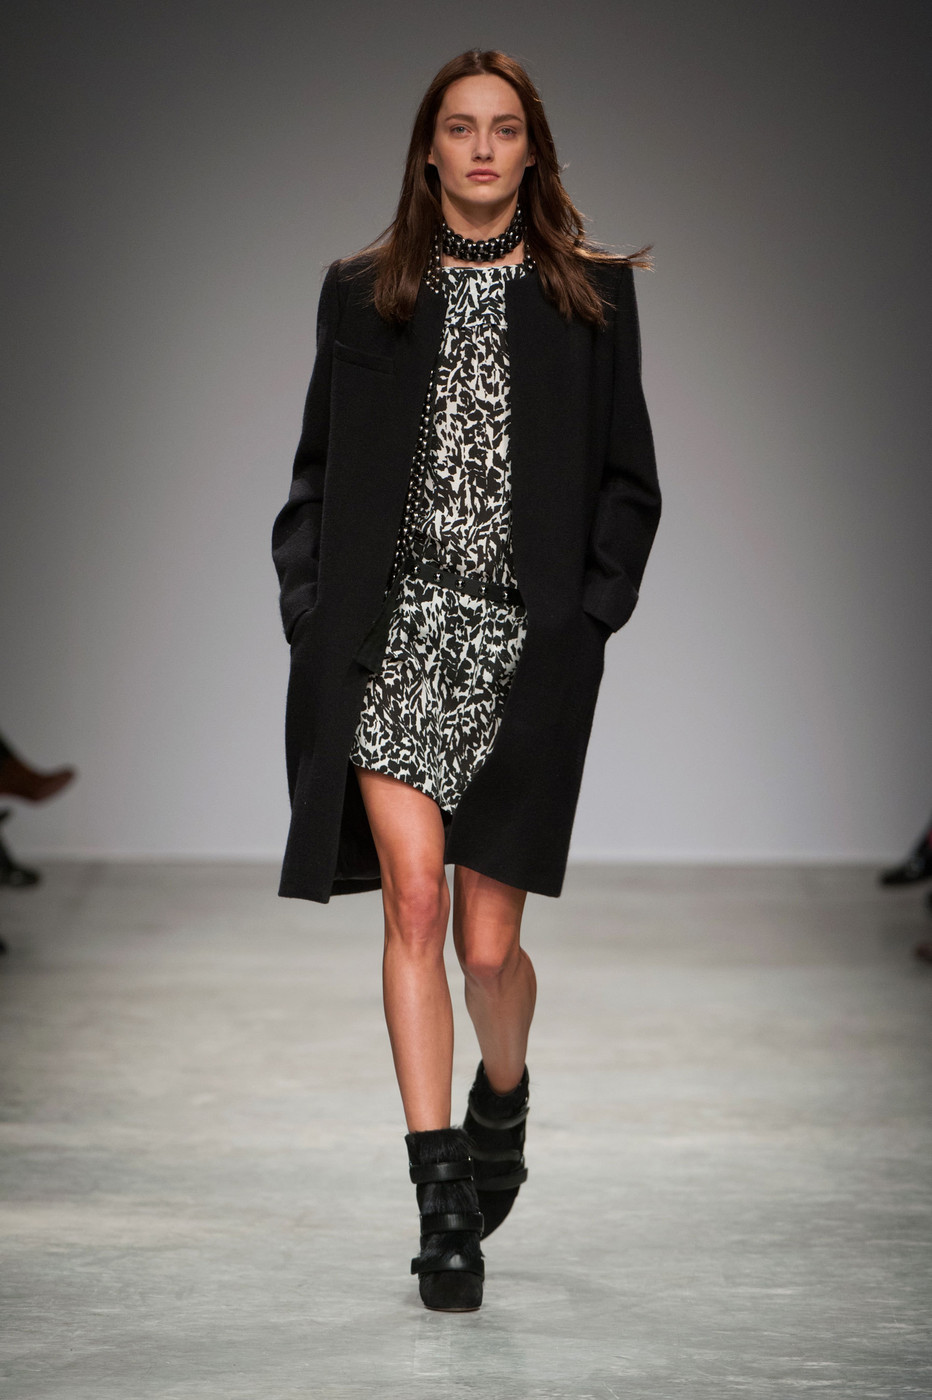 Fashion style Marant isabel fall runway review for lady